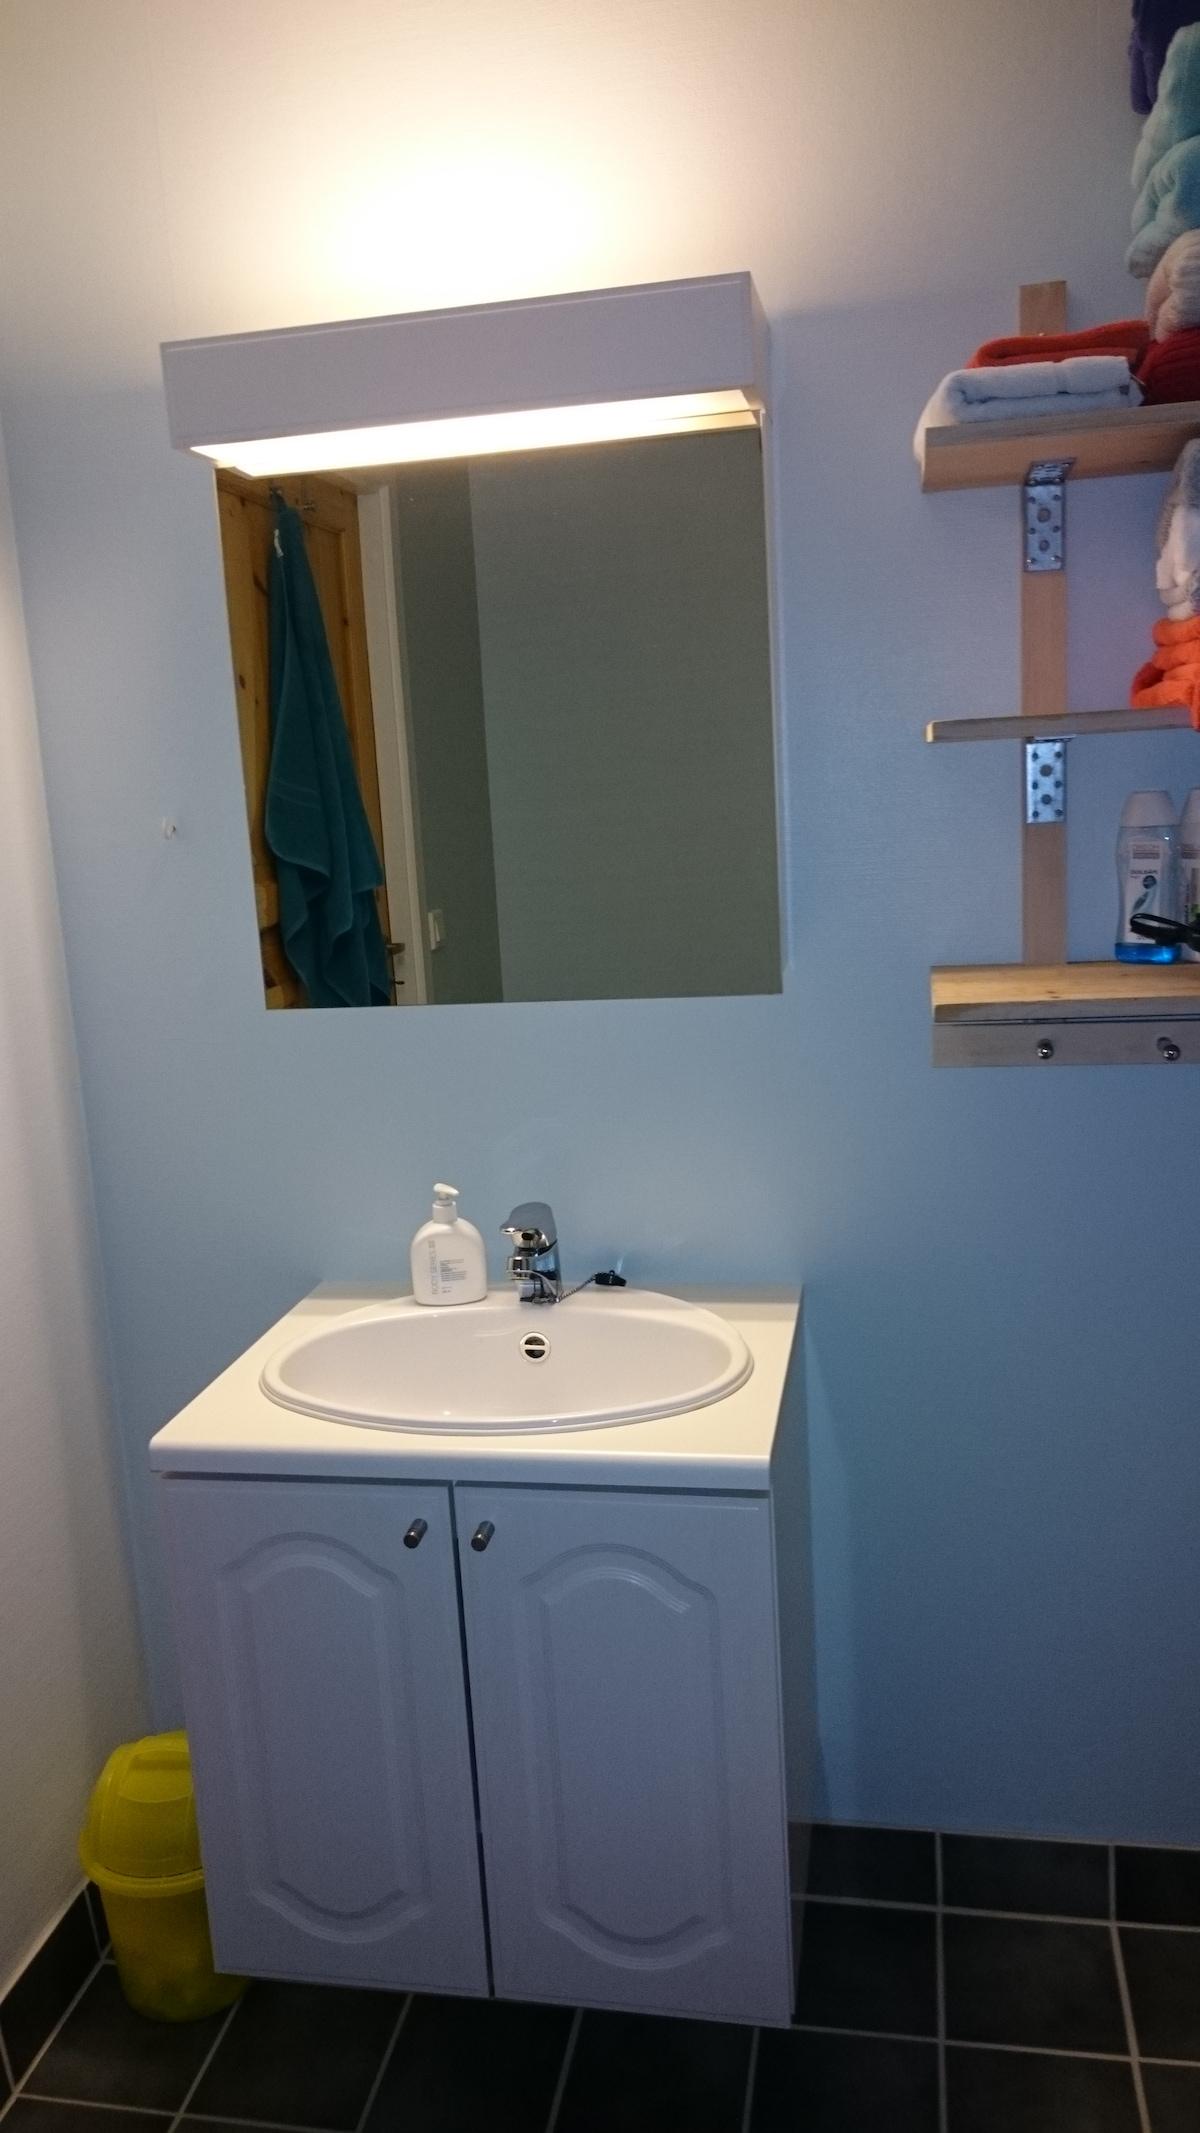 The bathroom contains a wash and mirror, a shower cabinet and a toilet.